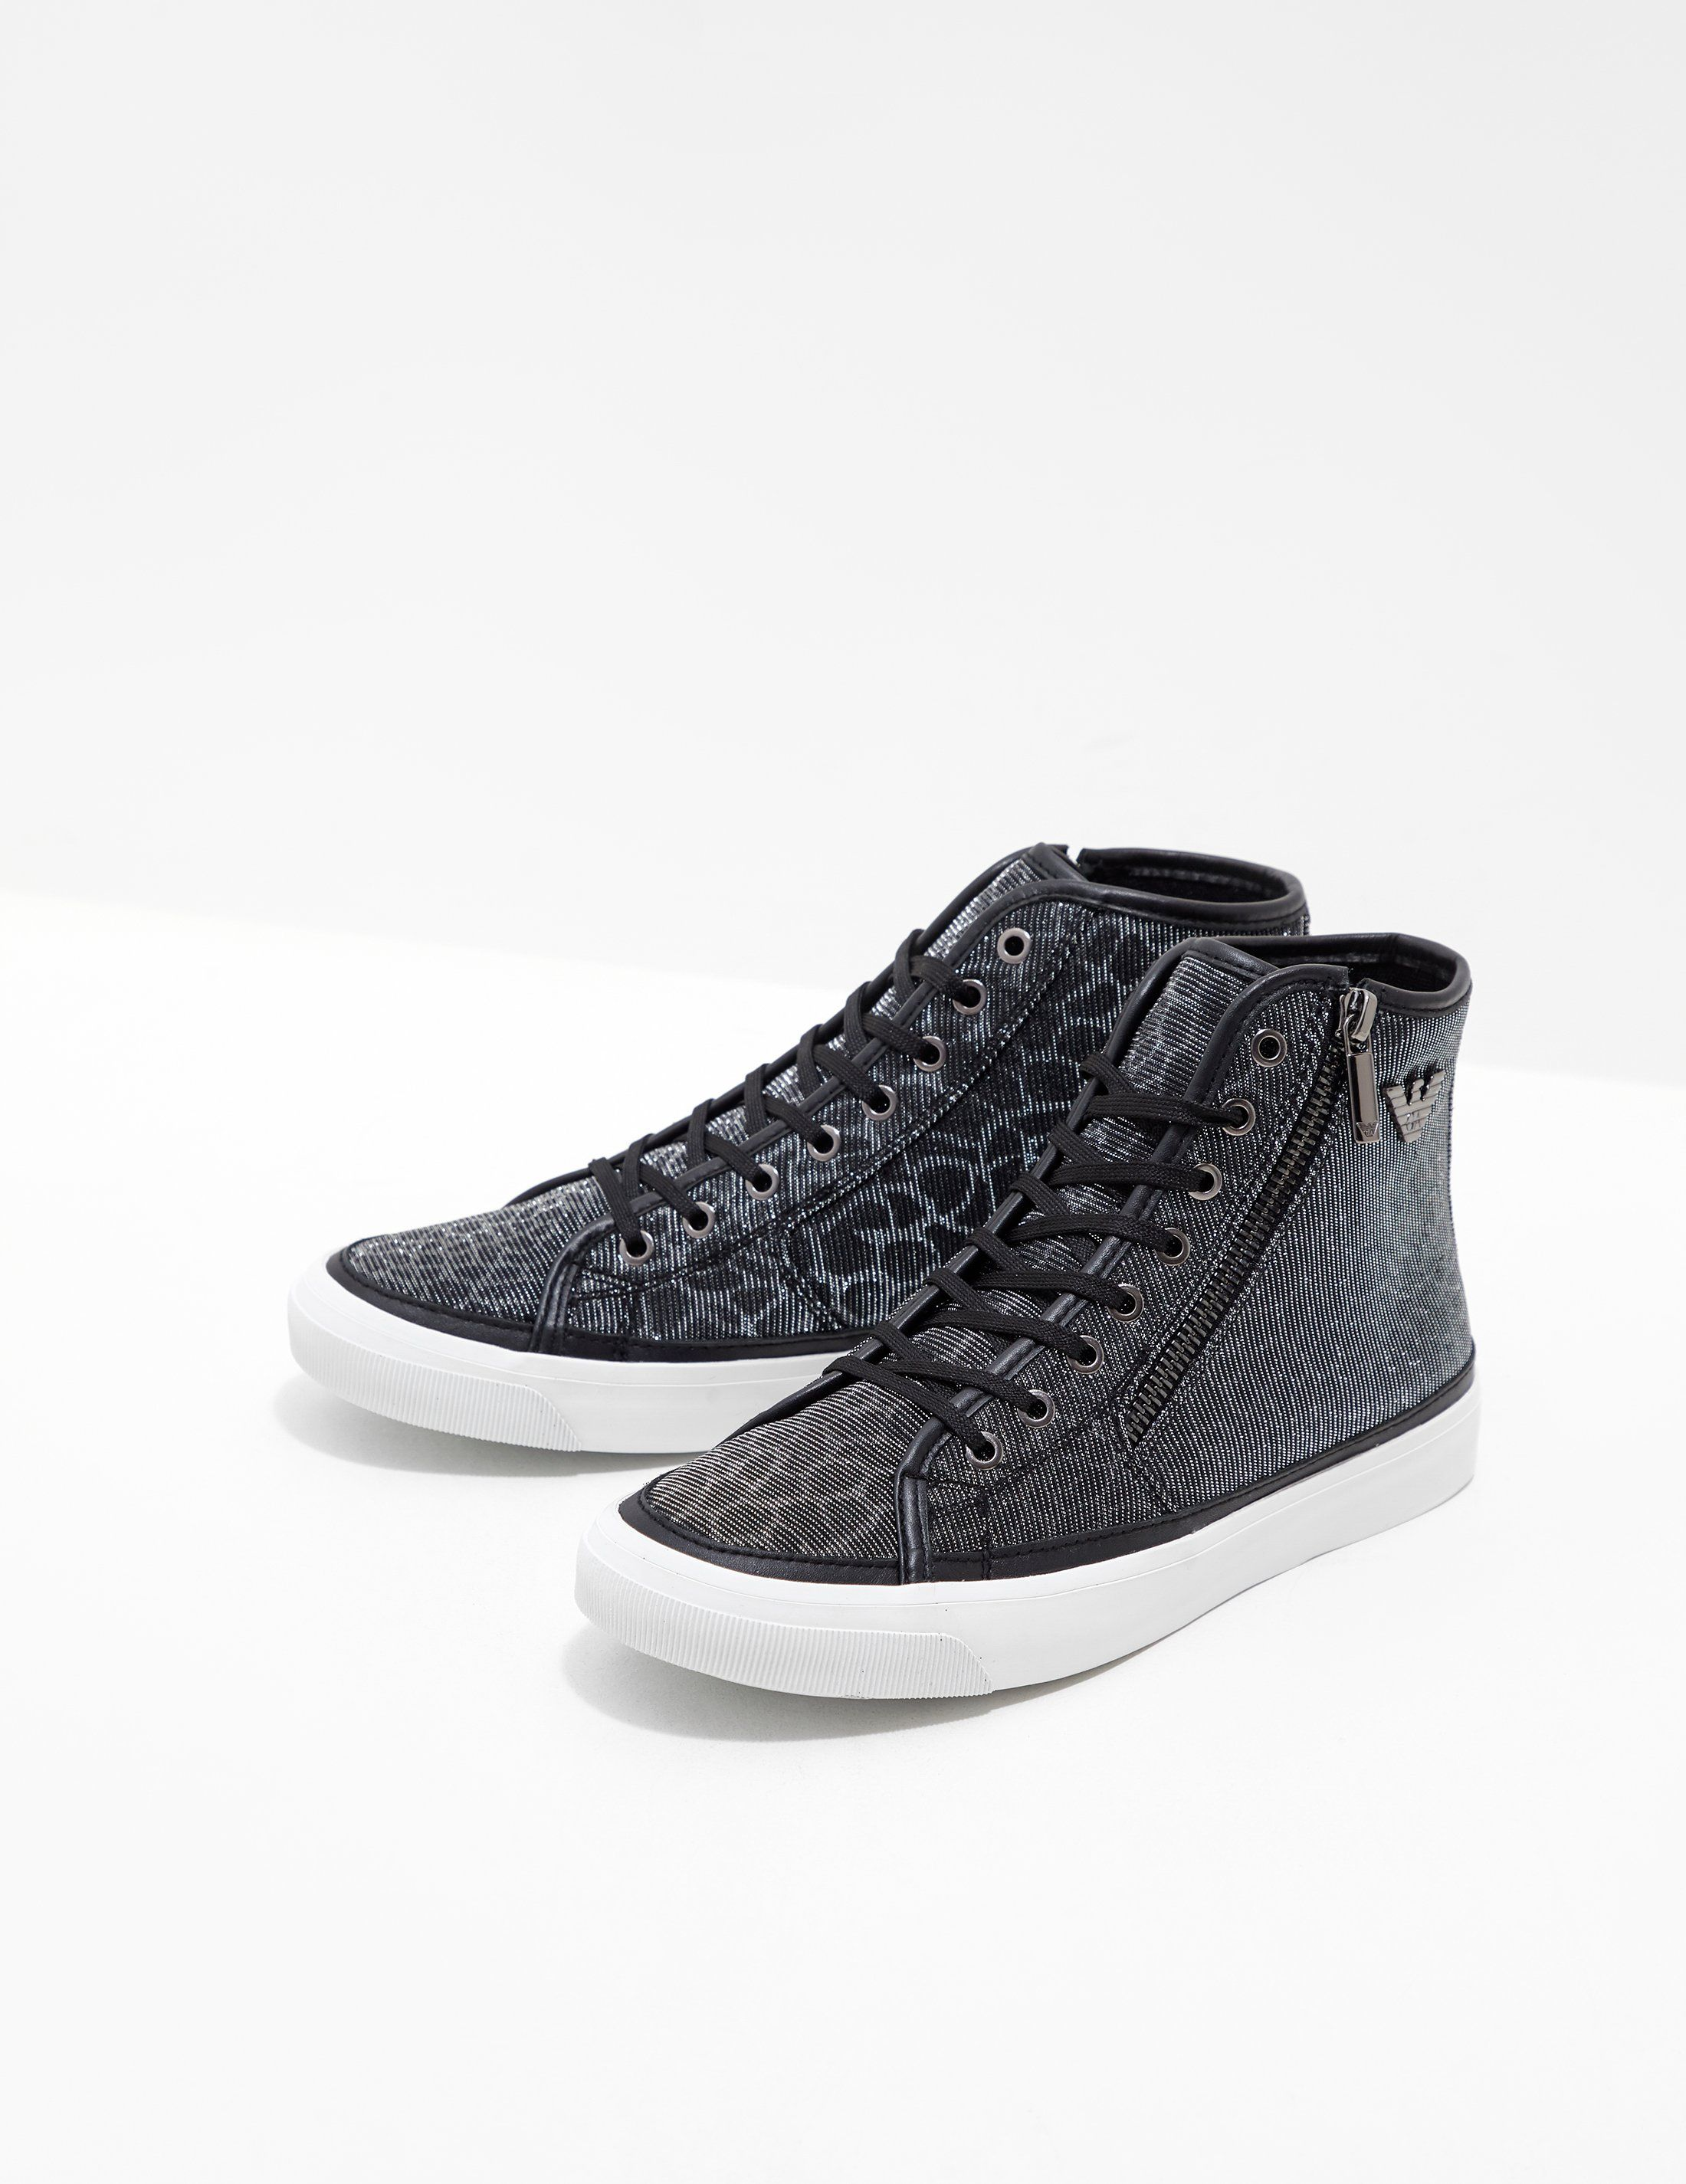 Emporio Armani High Top Trainers